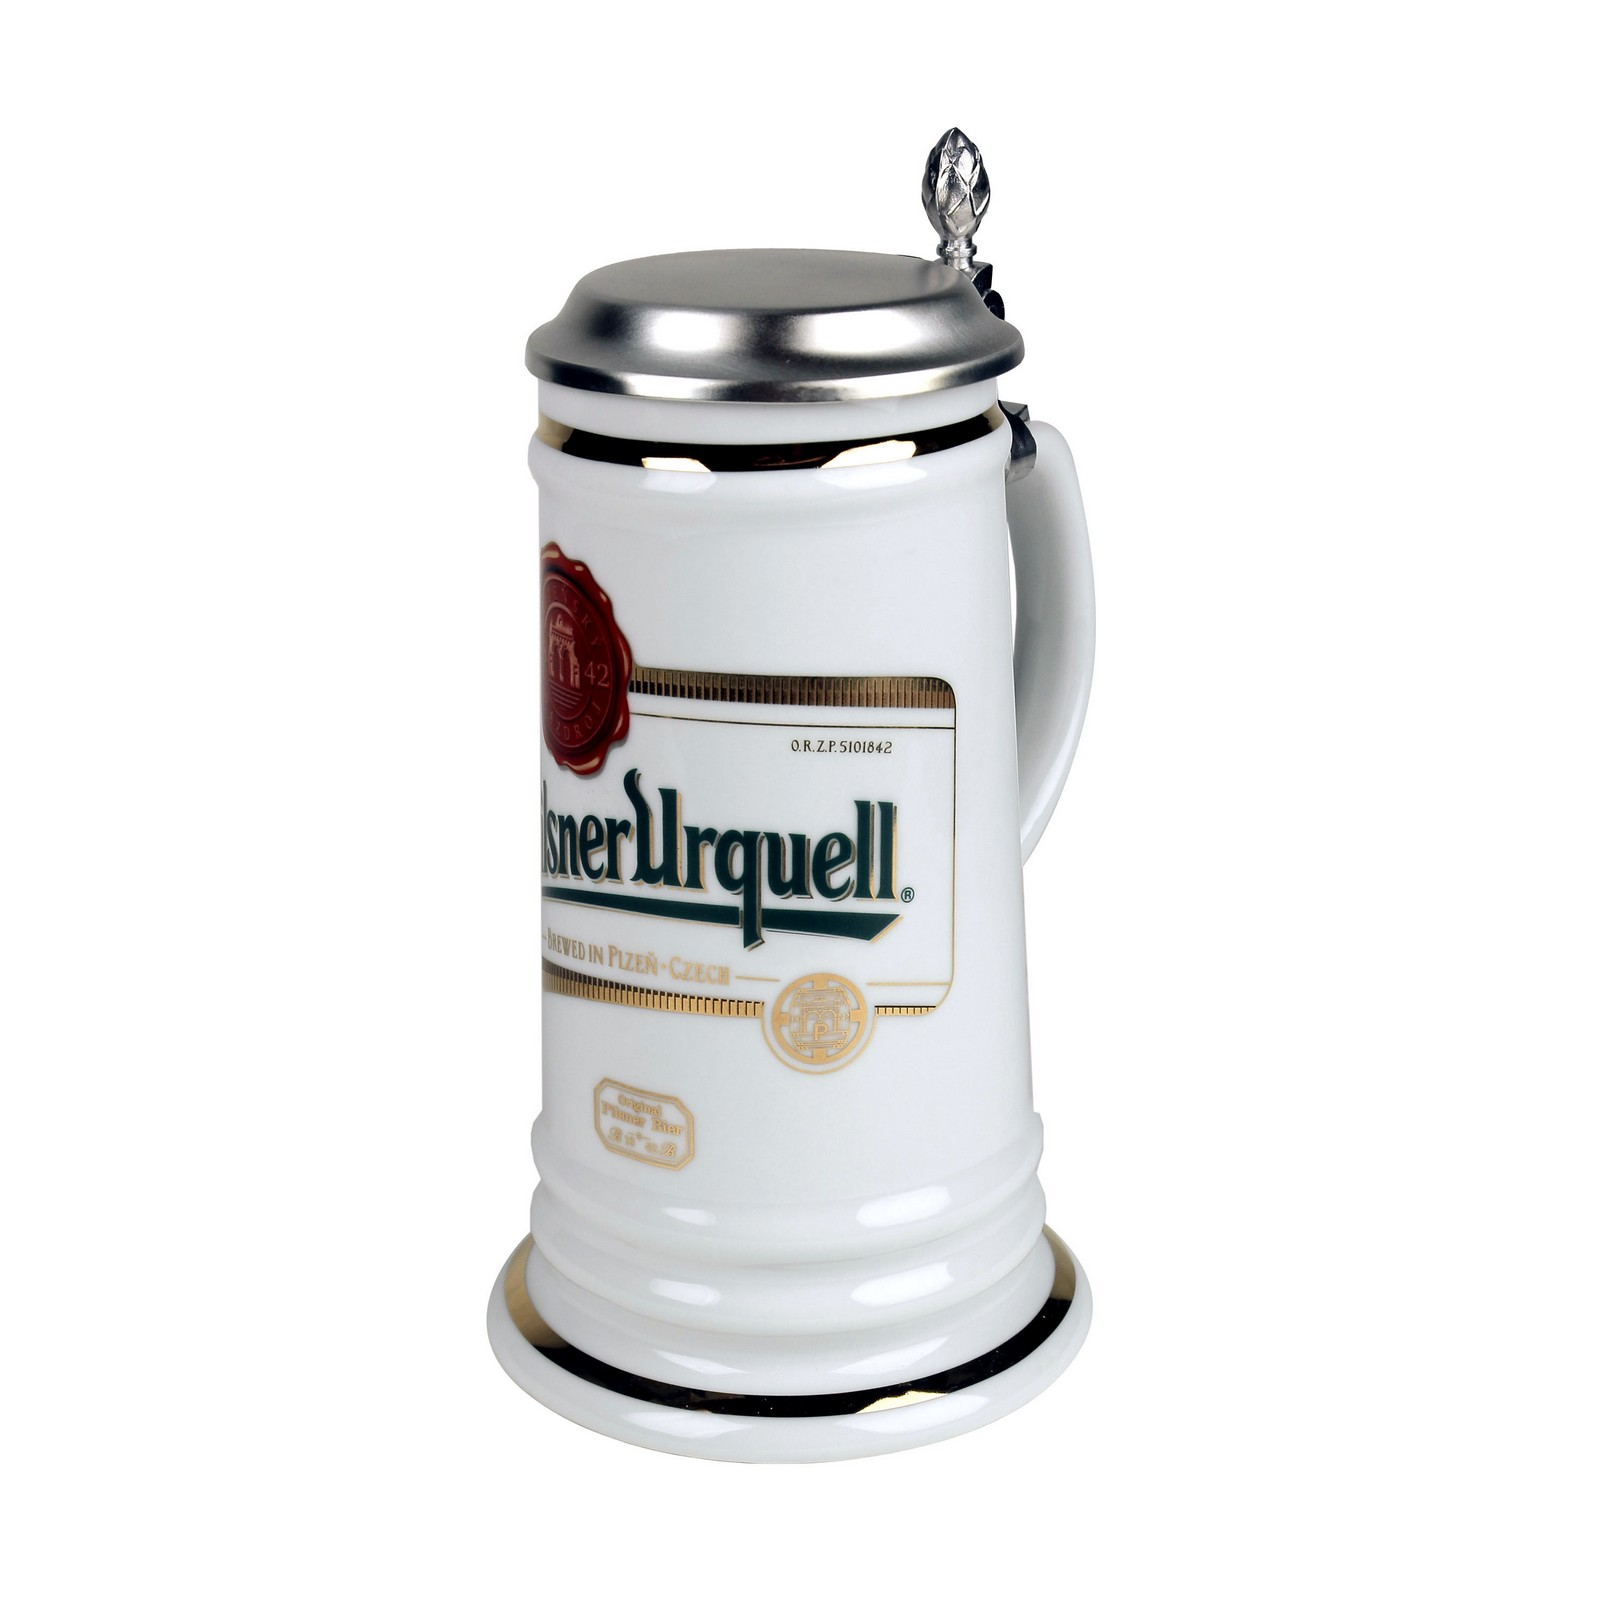 Karla tankard with a lid and the Pilsner Urquell logo